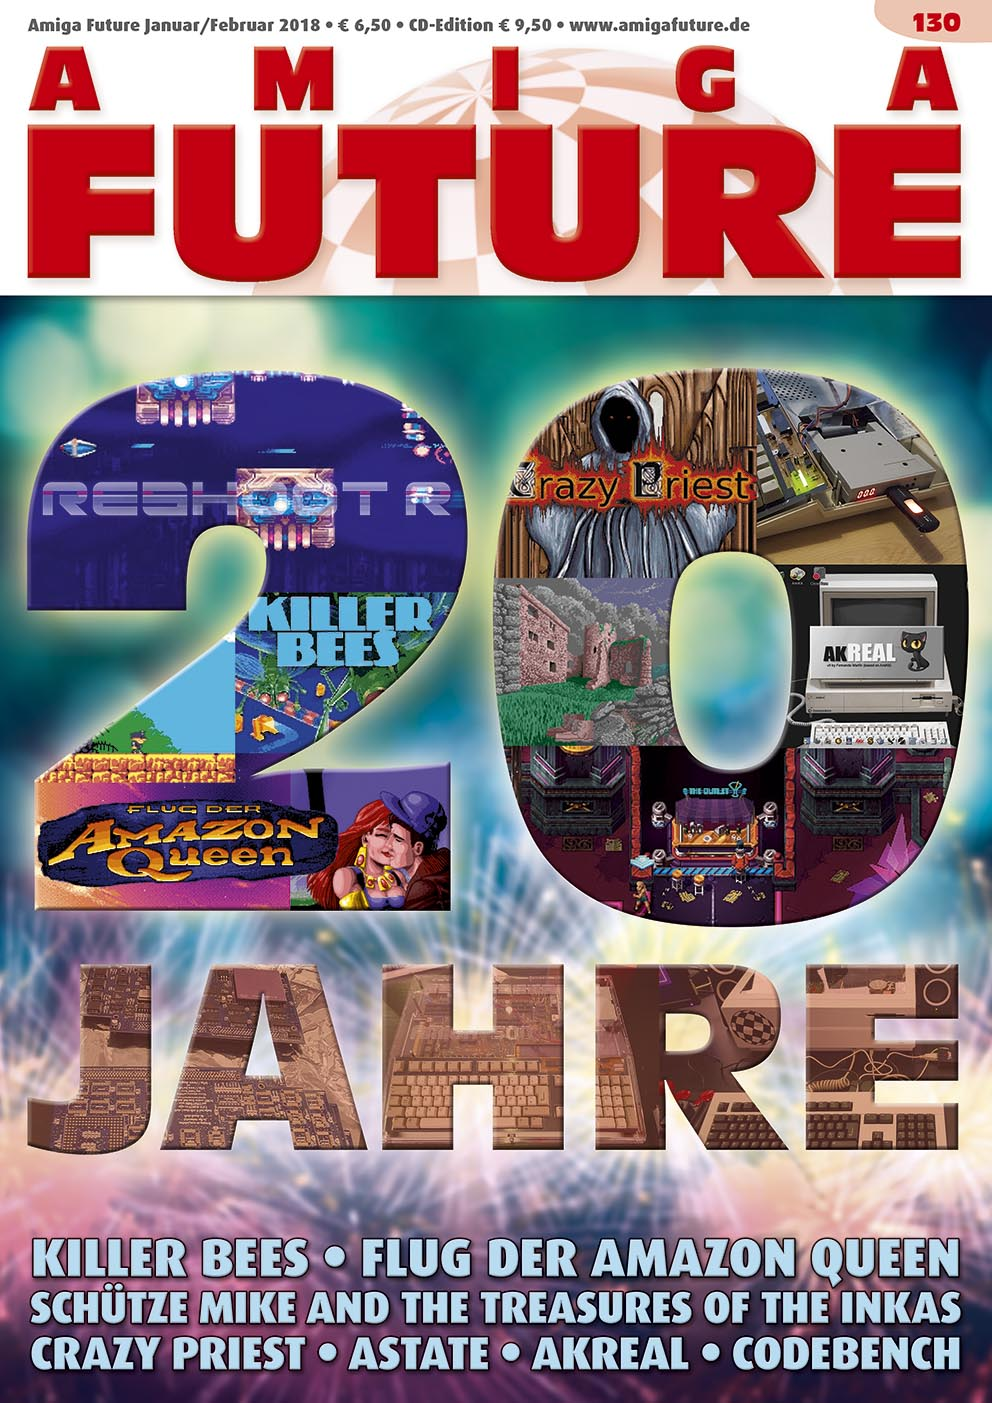 Amiga Future Issue 130